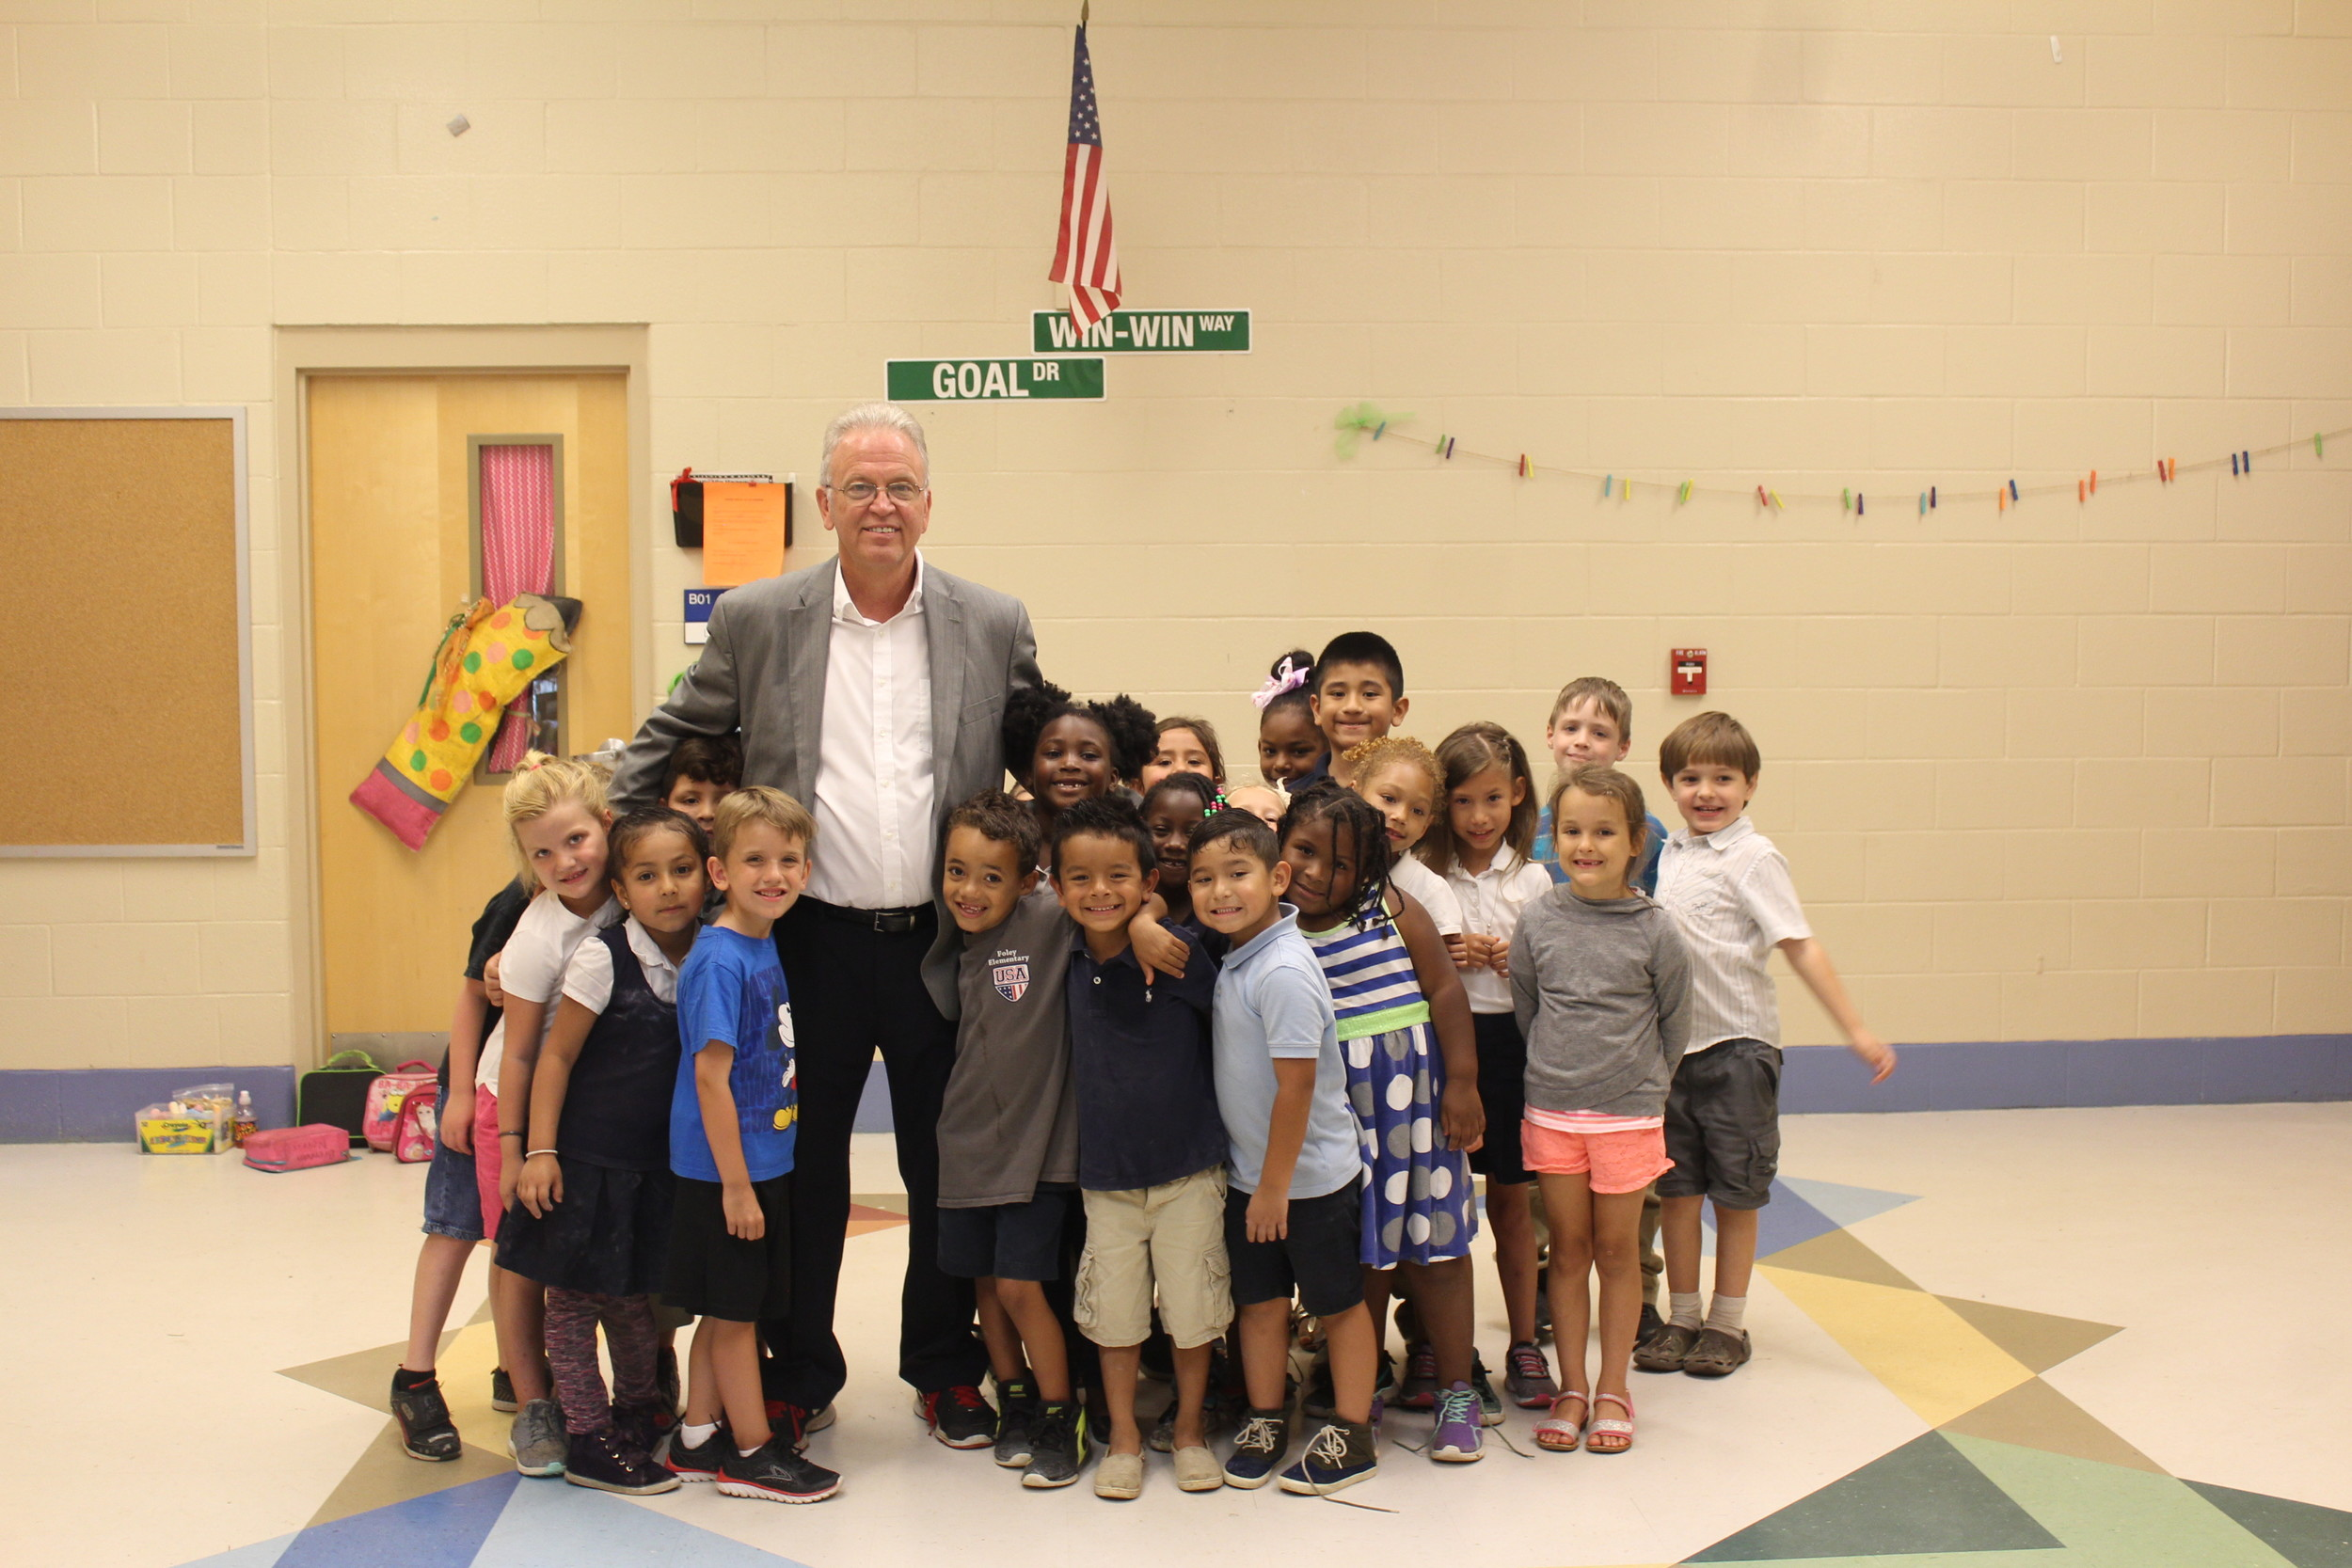 Foley Elementary School Principal Dr. William Lawrence is retiring after 21 years at the school and 40 years in education.